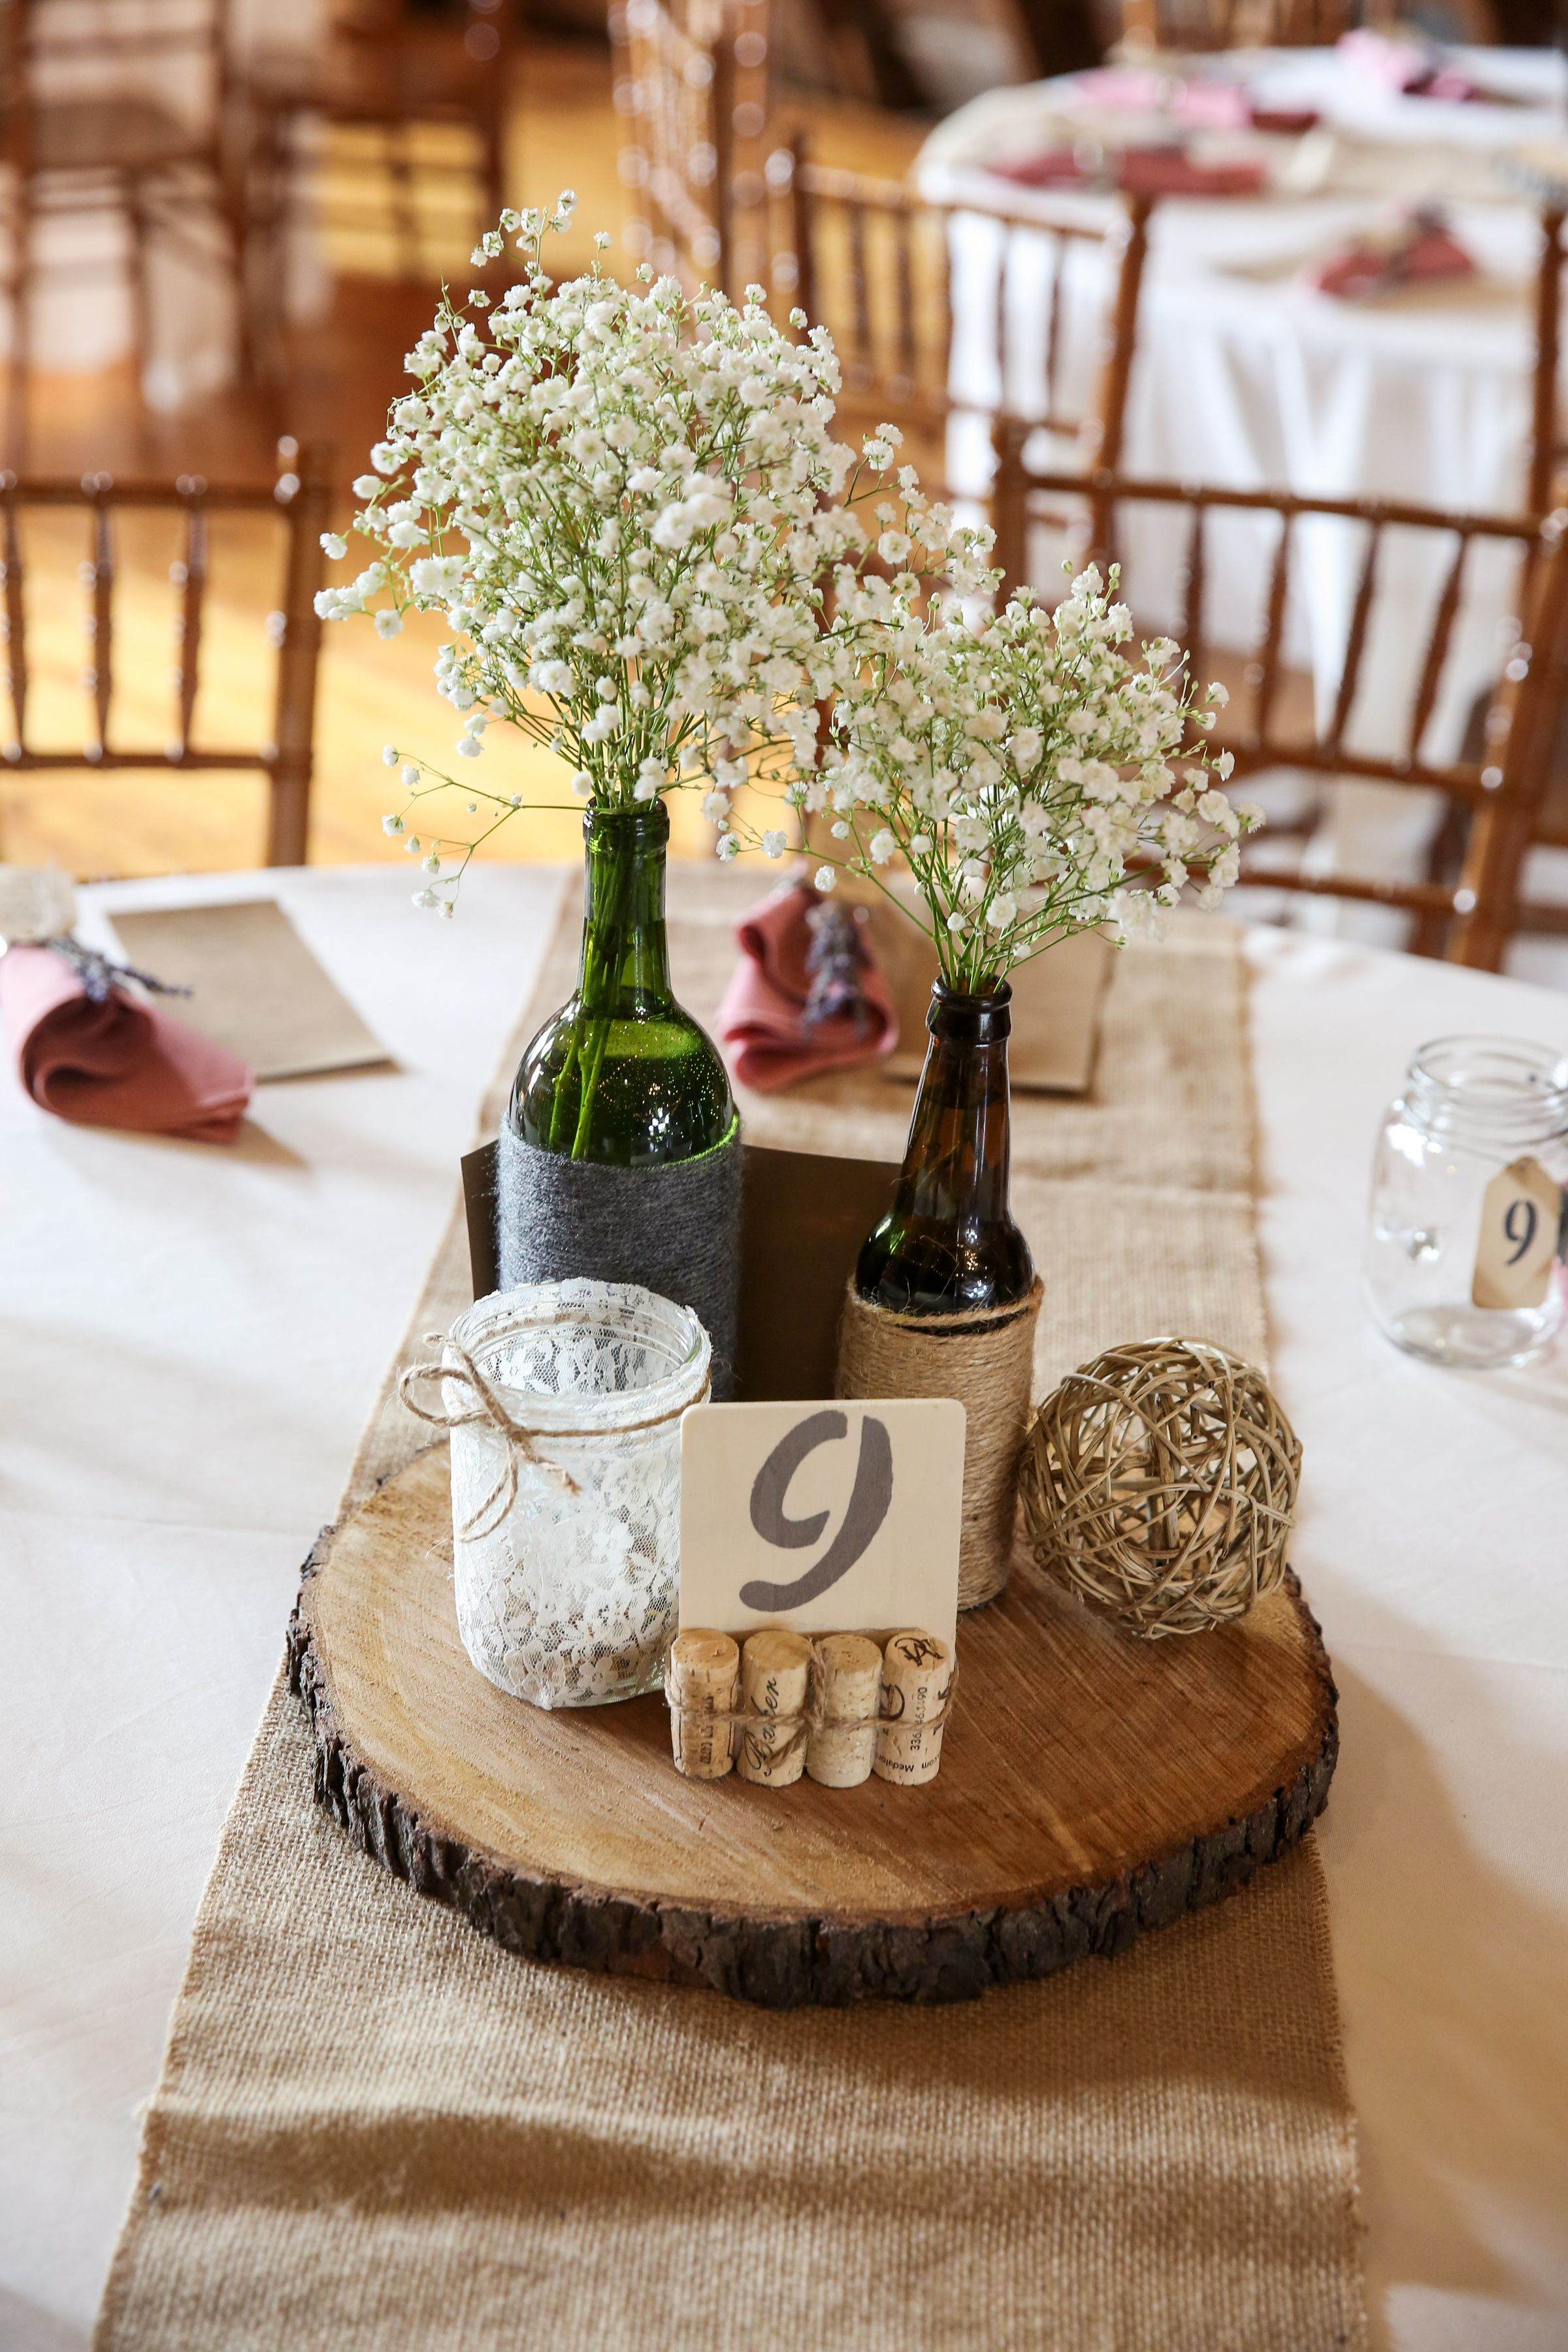 Pin by Mariah Golde on Our Rustic Barn Wedding (With